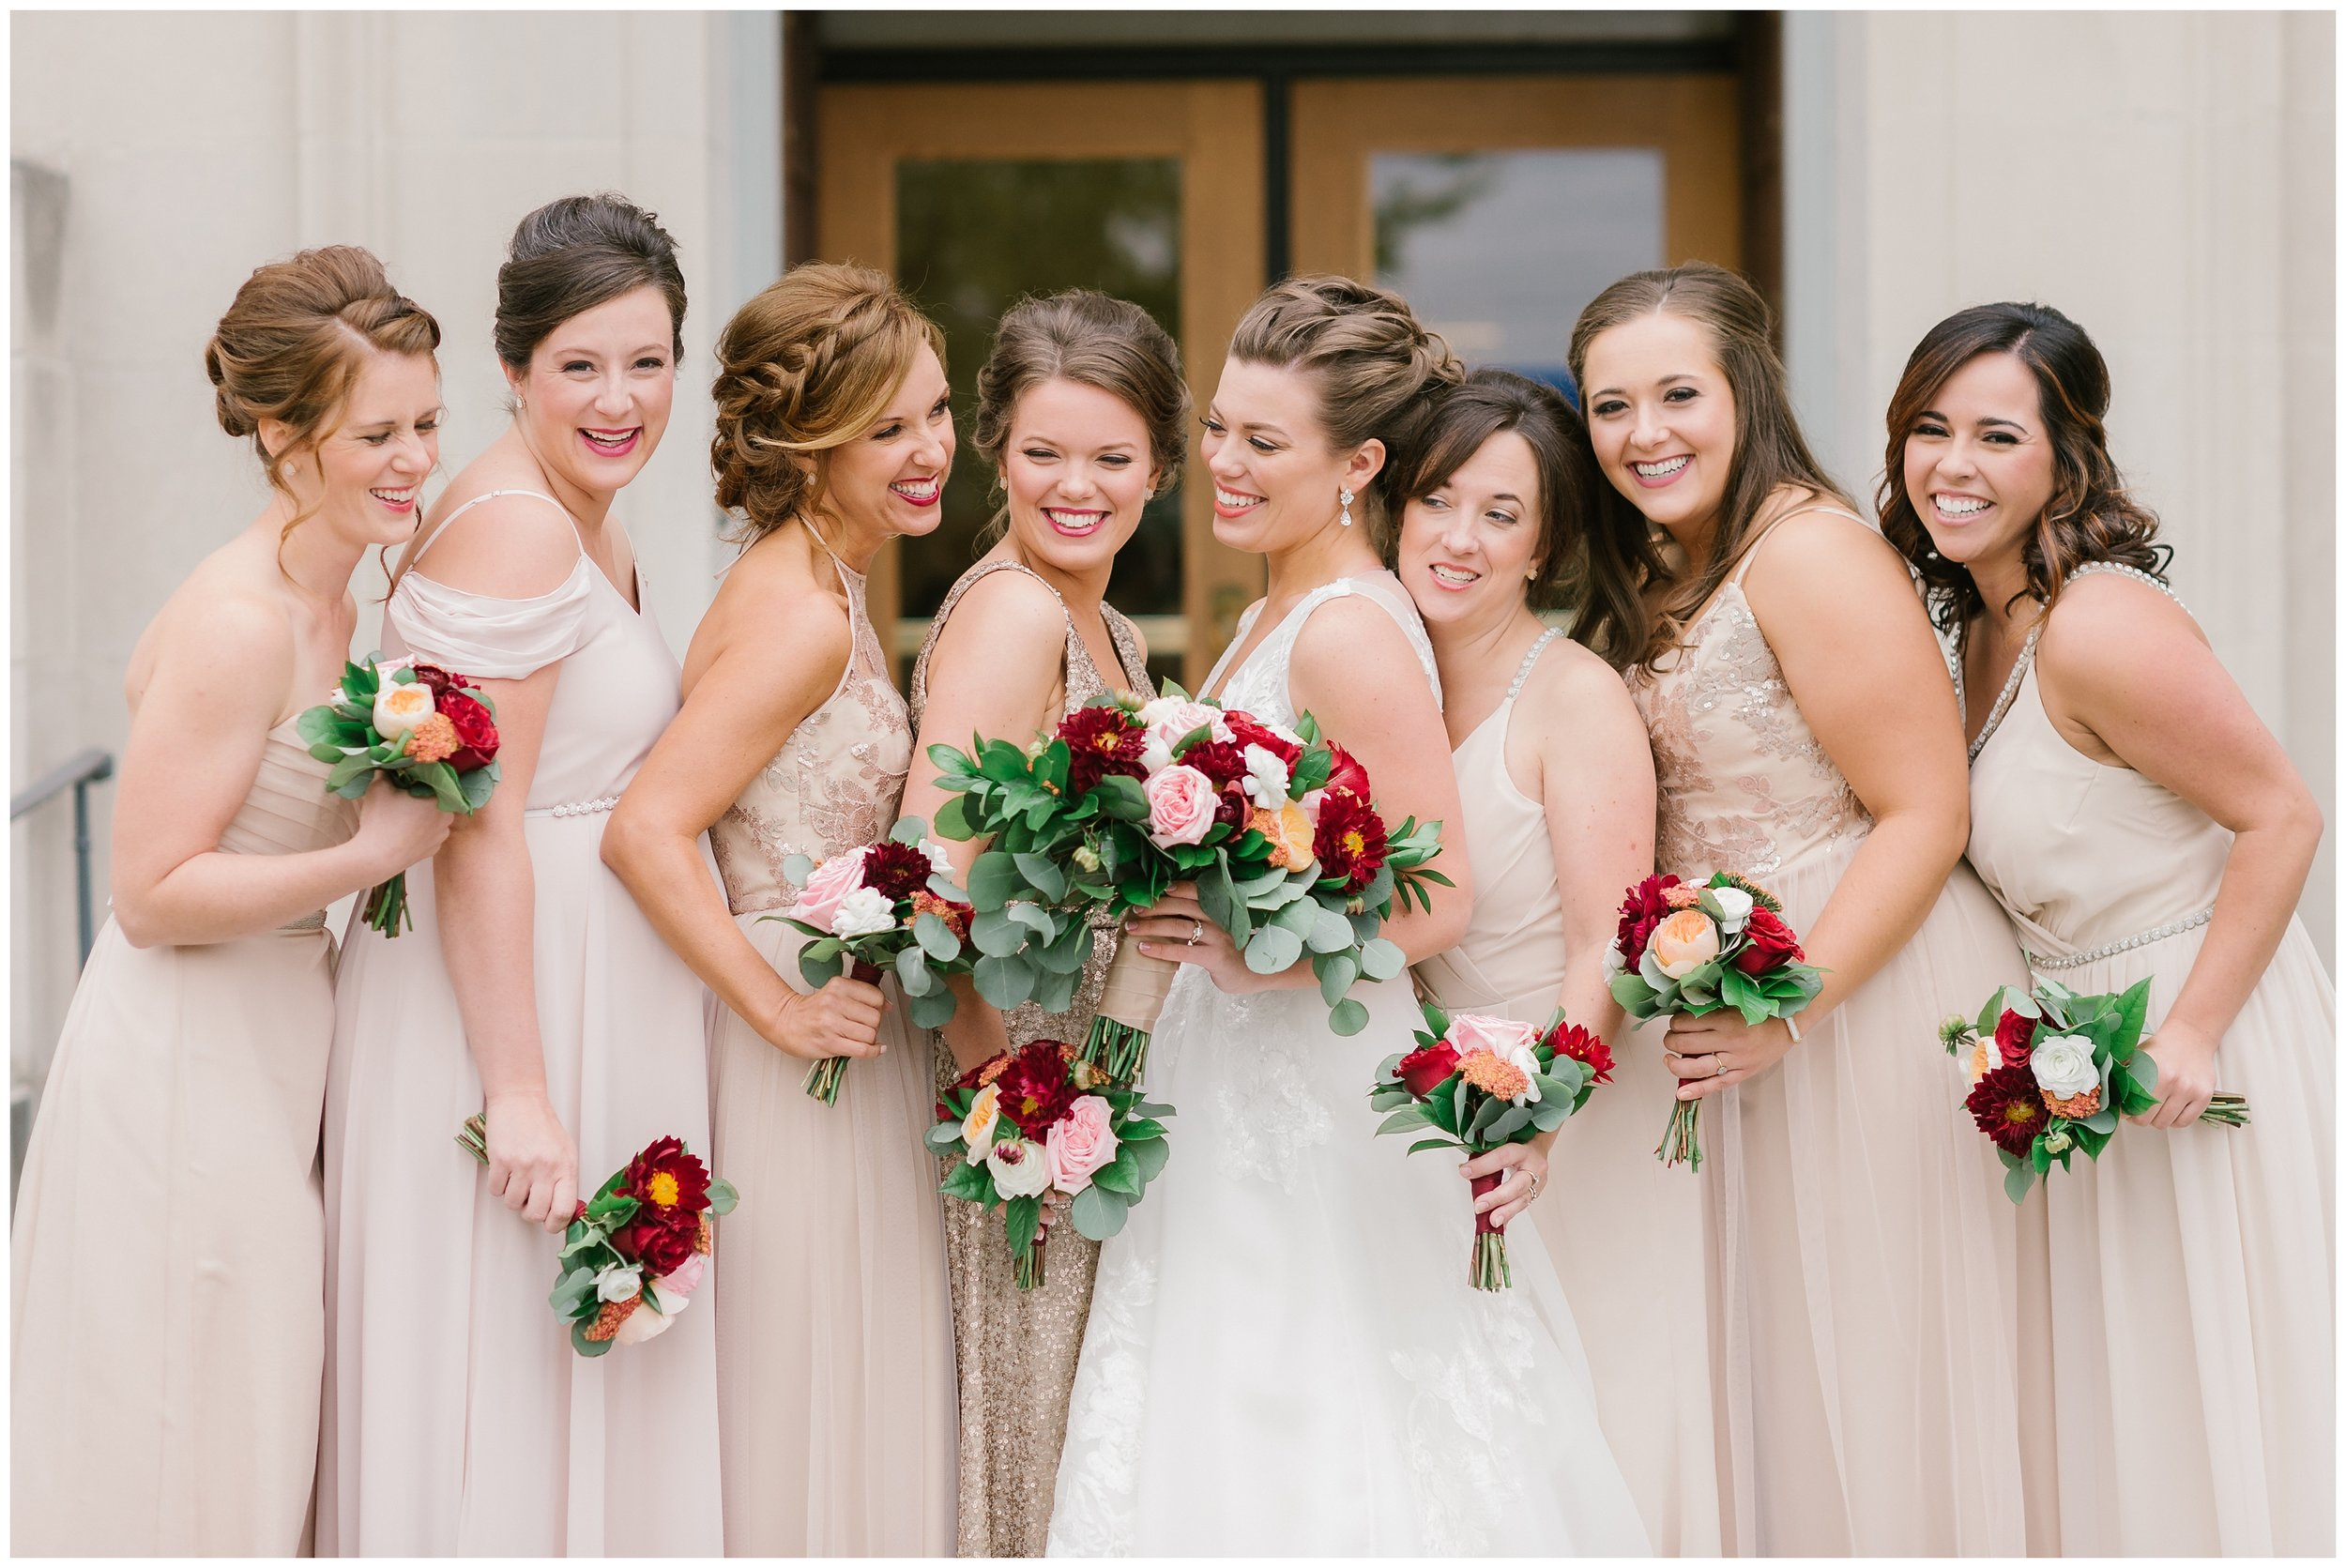 Rebecca_Shehorn_Photography_Indianapolis_Wedding_Photographer_7721.jpg